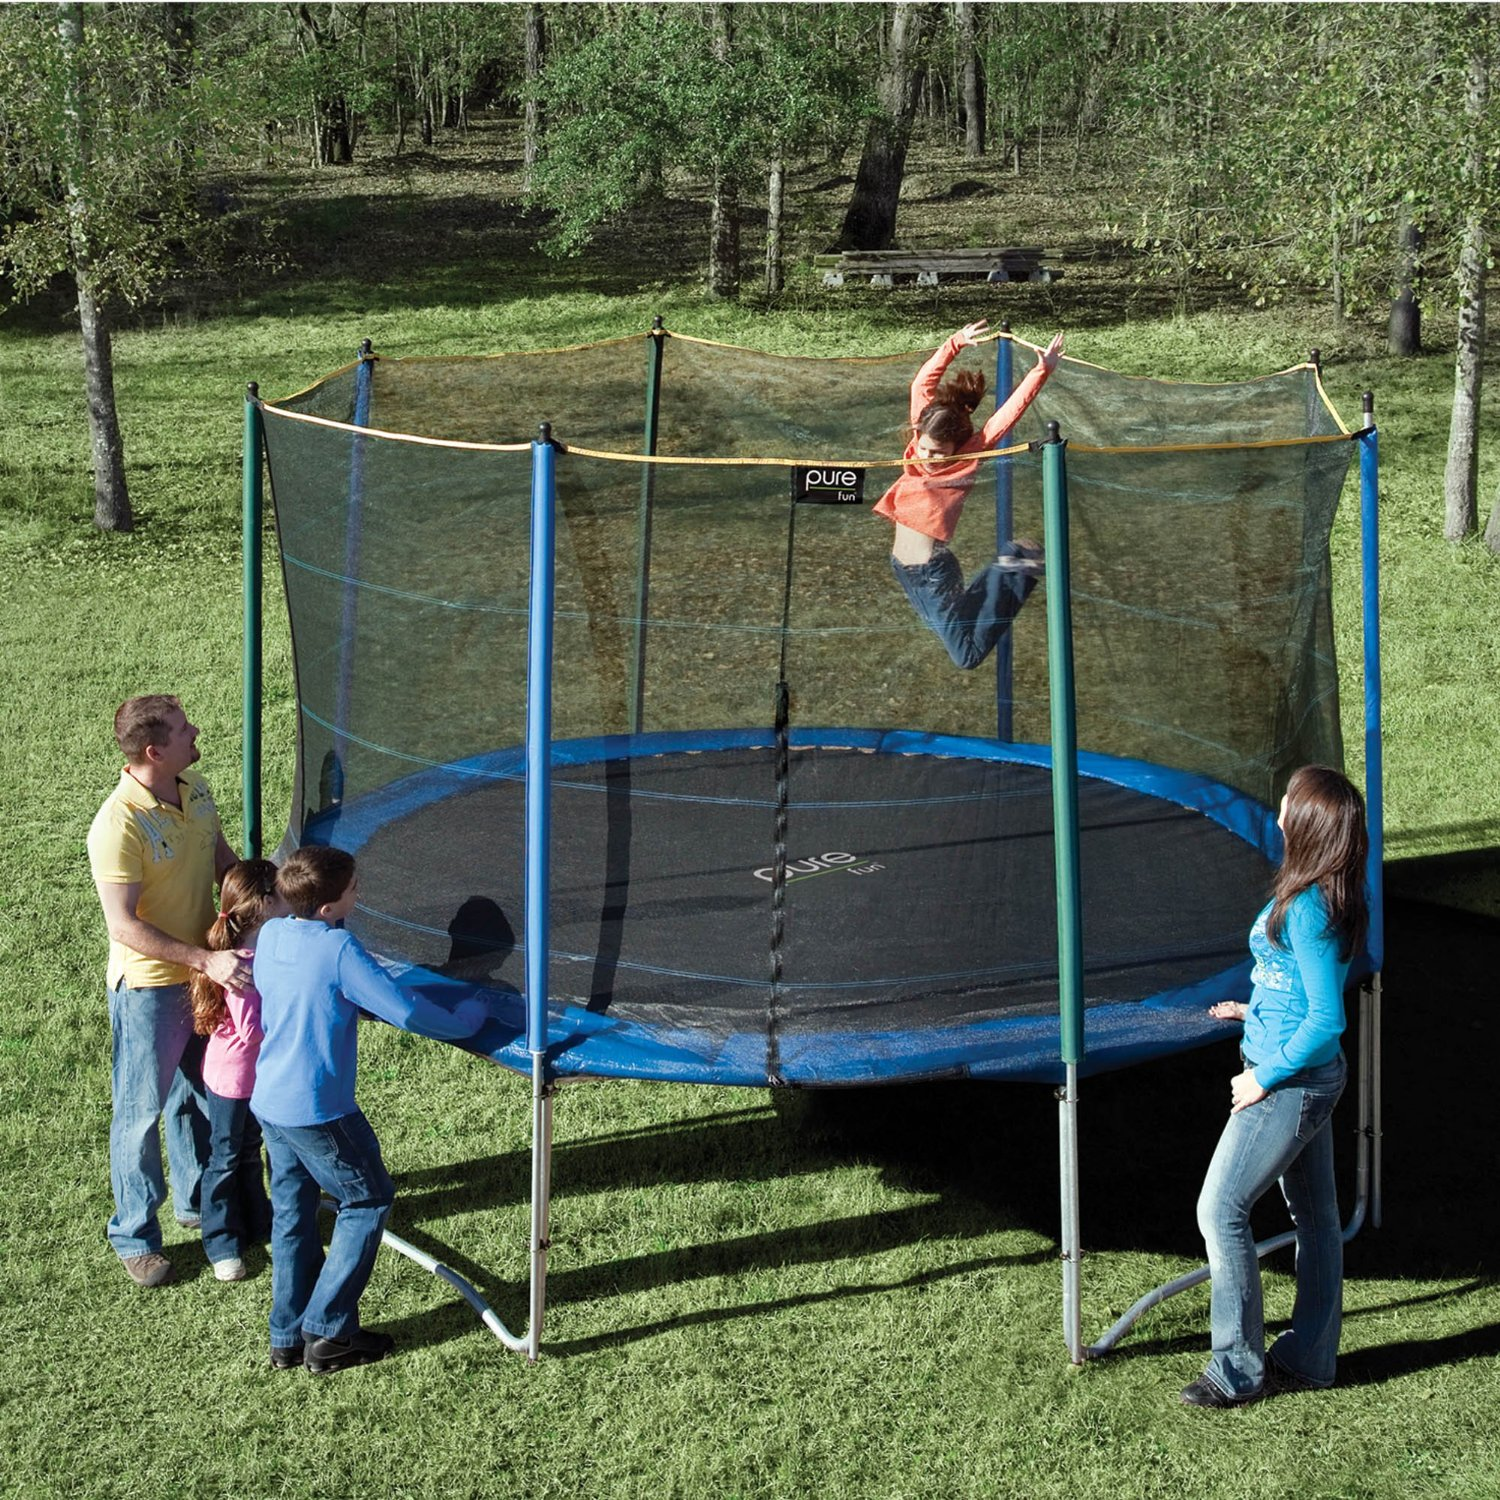 12 Foot Trampoline Mat And Springs: Pure Fun 12-Foot Trampoline With Enclosure Review